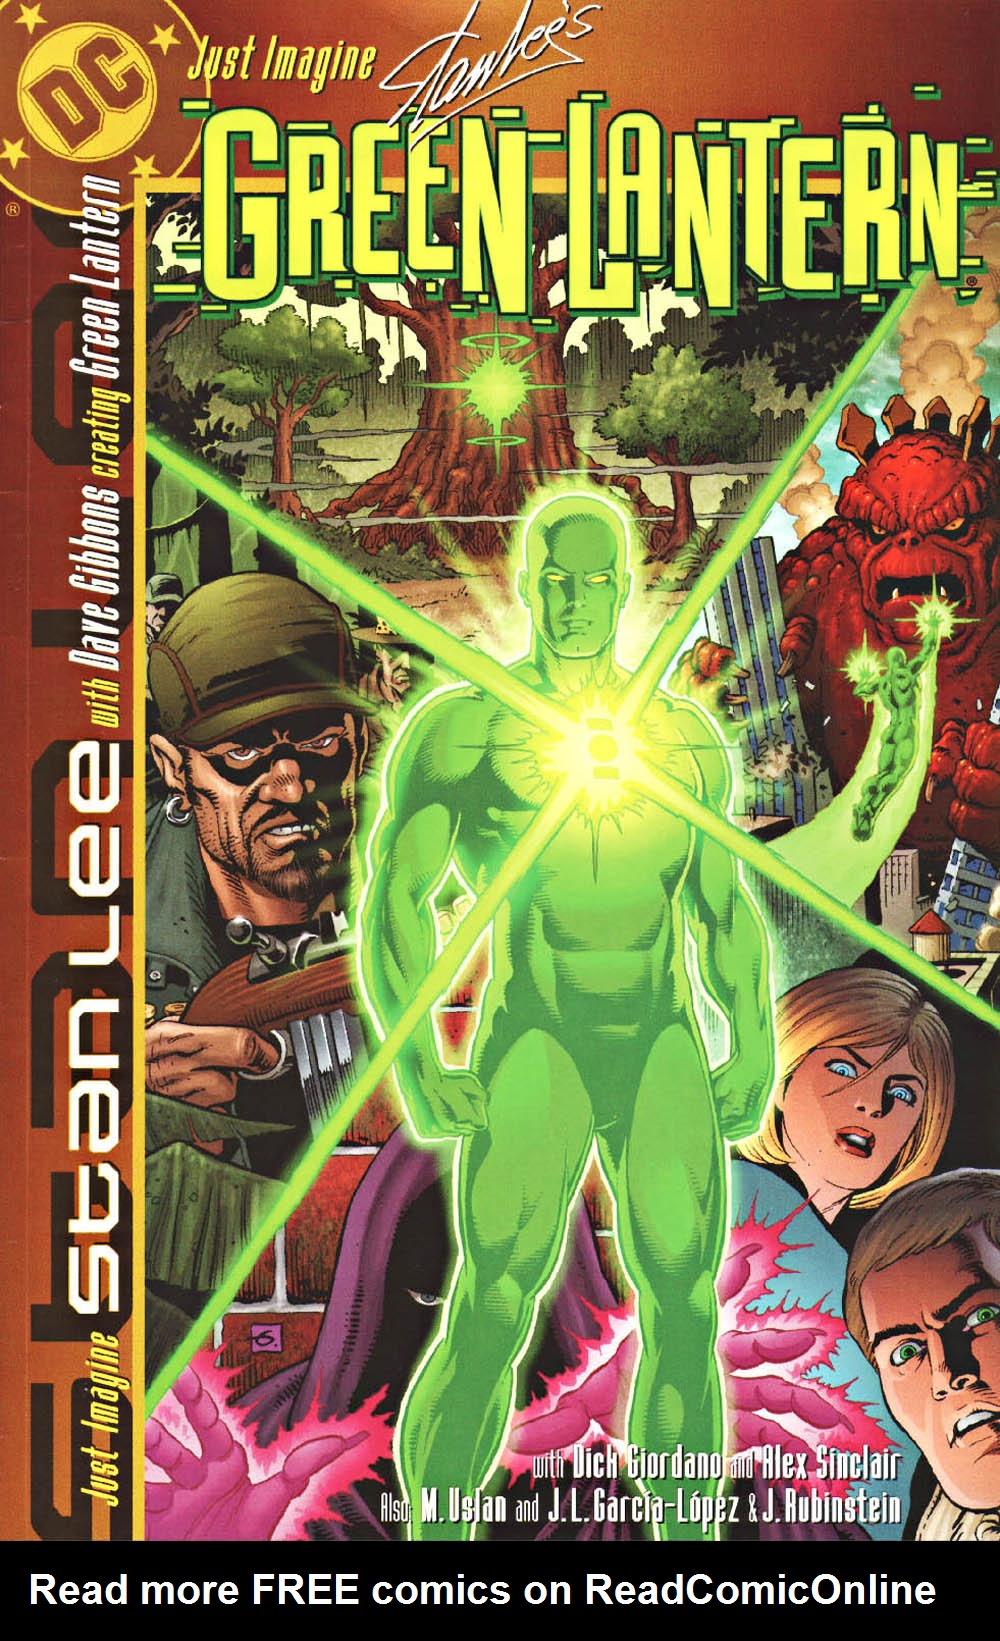 Just imagine Stan Lee's Green Lantern issue Full - Page 1